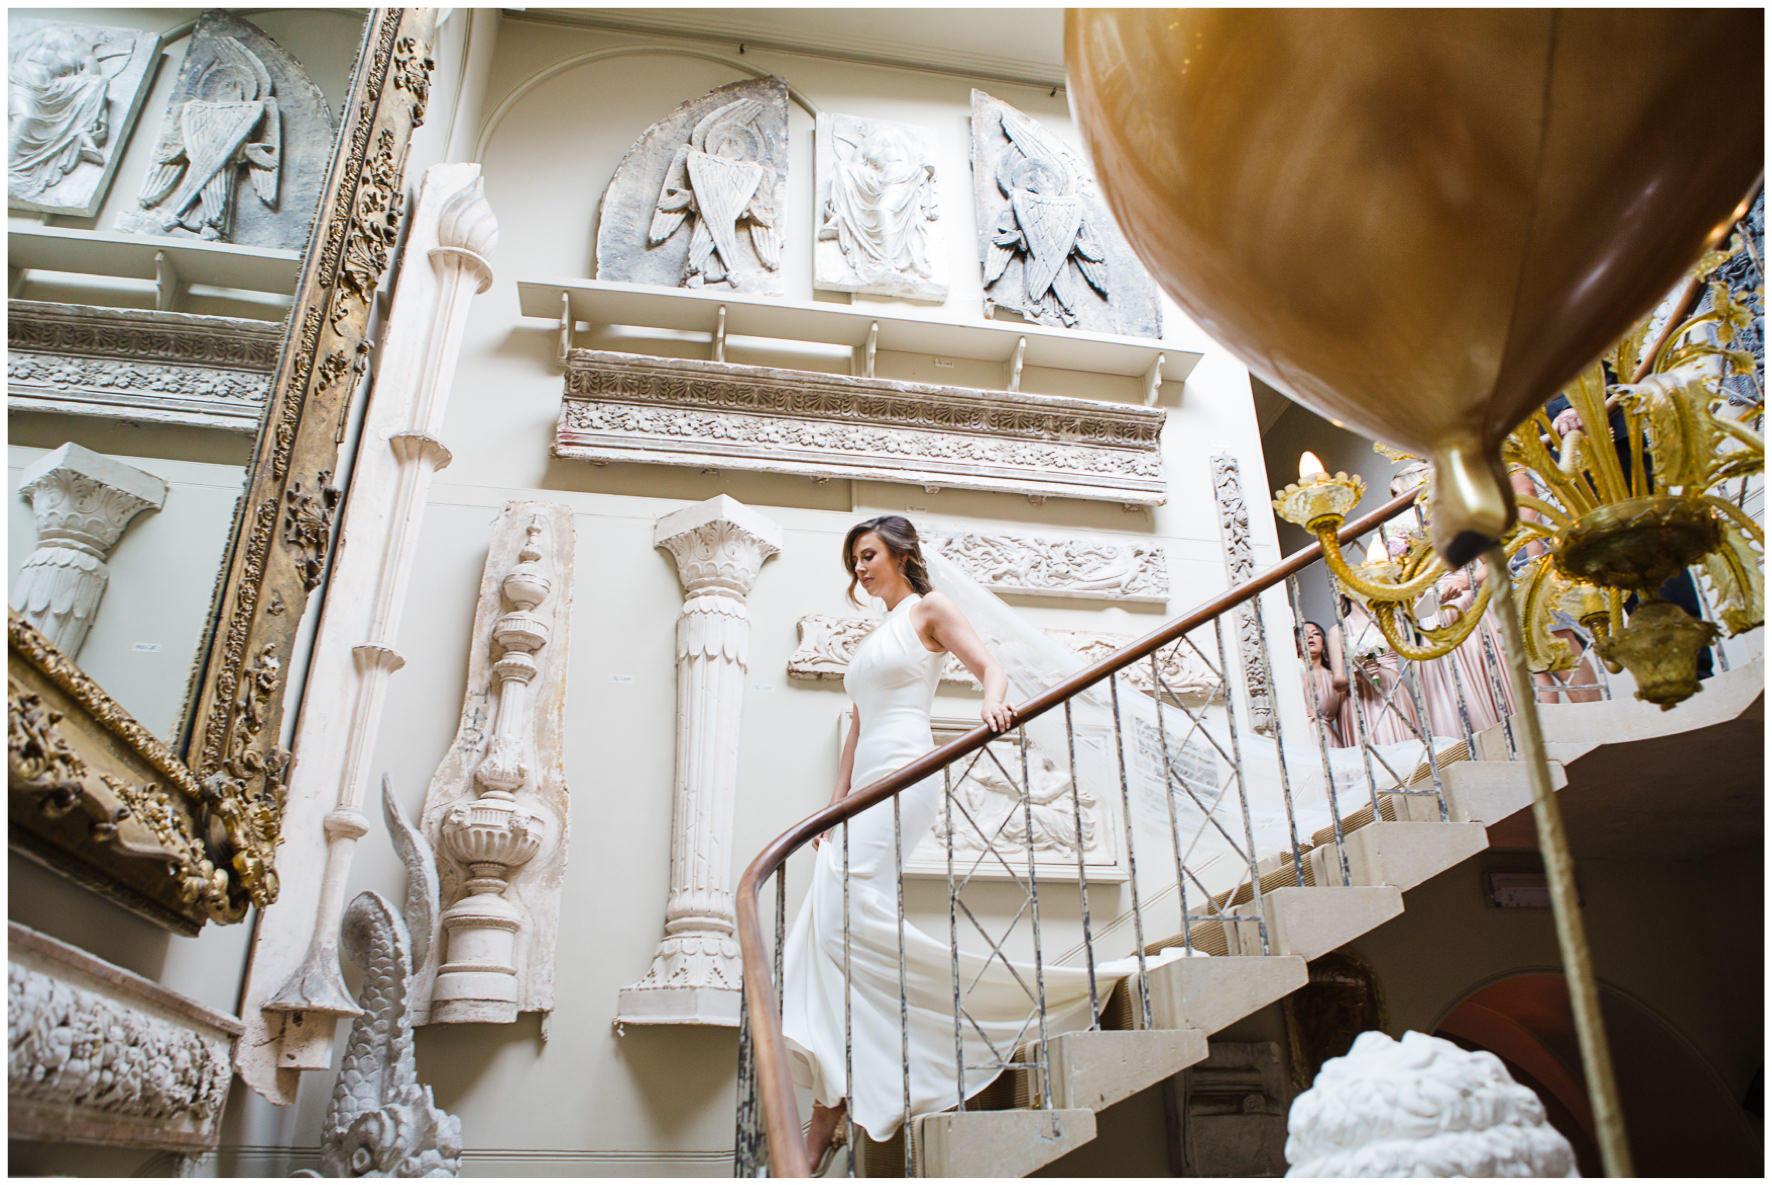 Lucy Davenport Photography, Aynhoe Park, Oxfordshire, wedding venue, Rock My Wedding, Suzanne Neville wedding dress